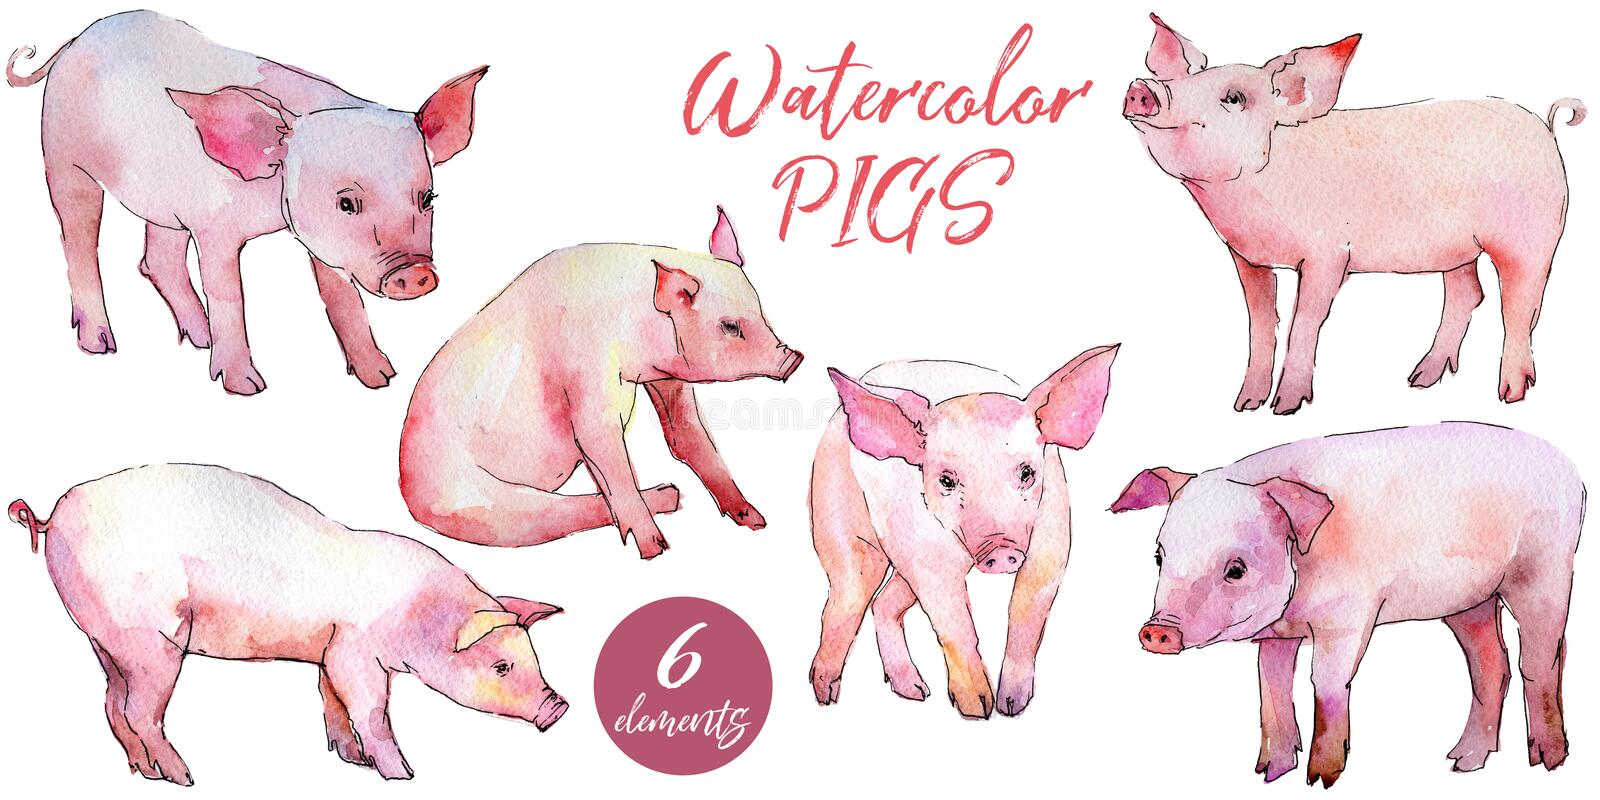 Animal sauvage de porc dans un style d'aquarelle d'isolement illustration de vecteur